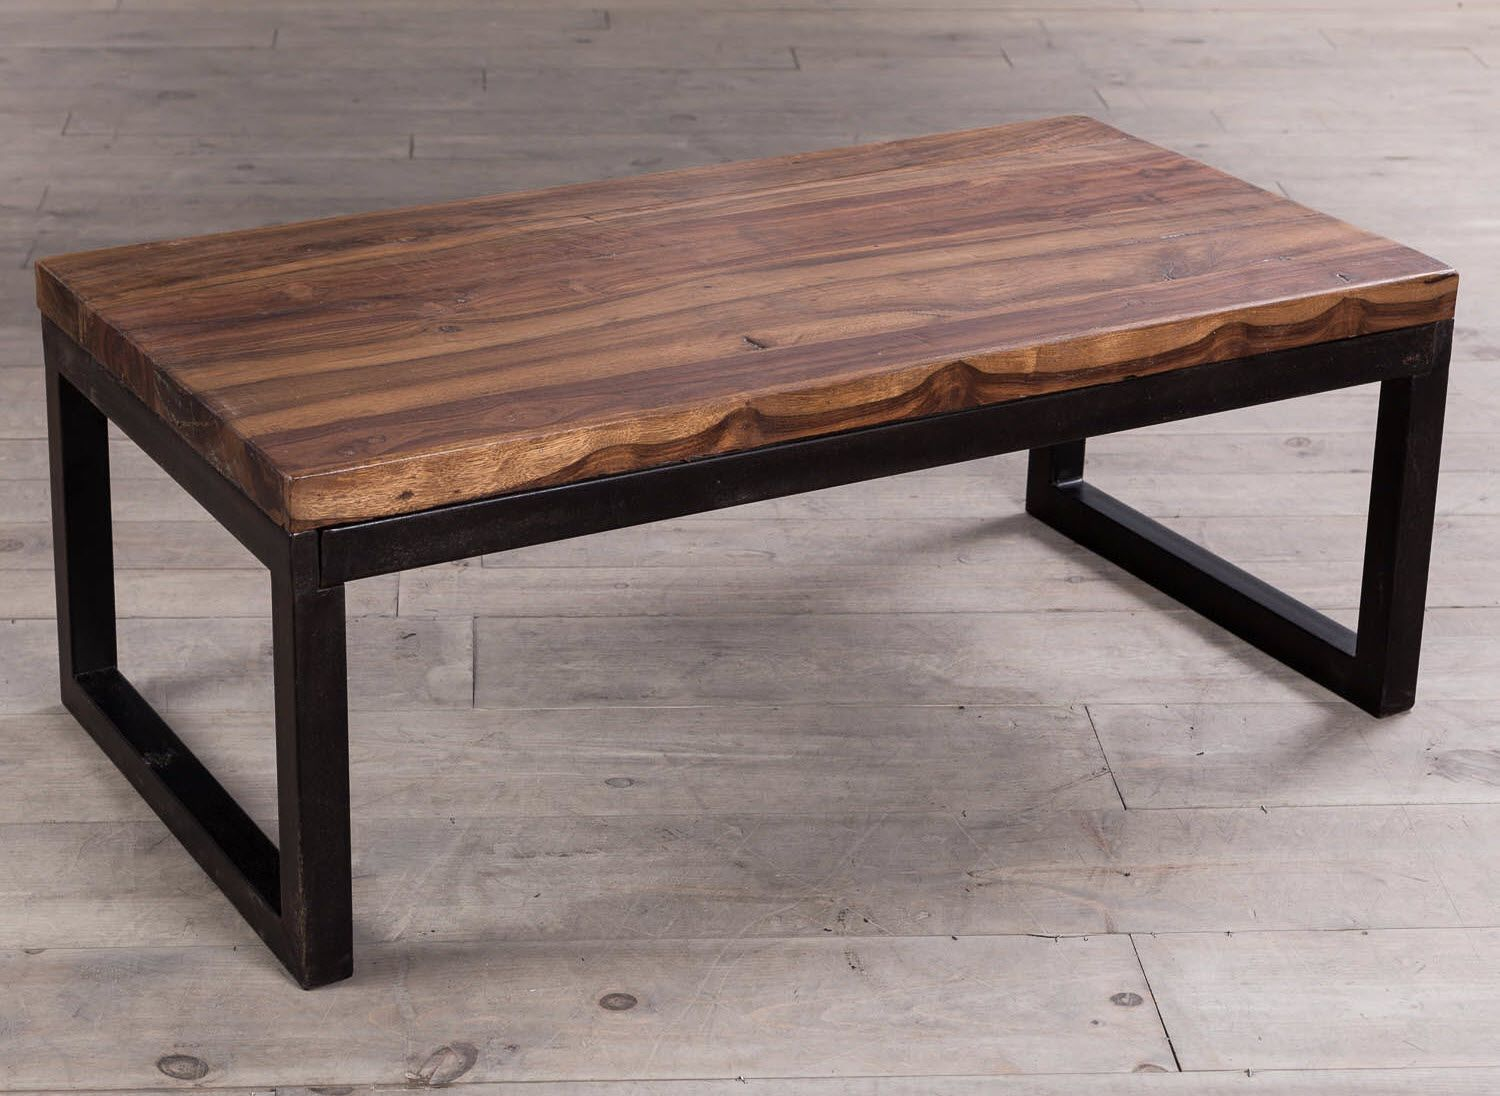 Cordova Long Coffee Table Beautiful The ojays and Natural